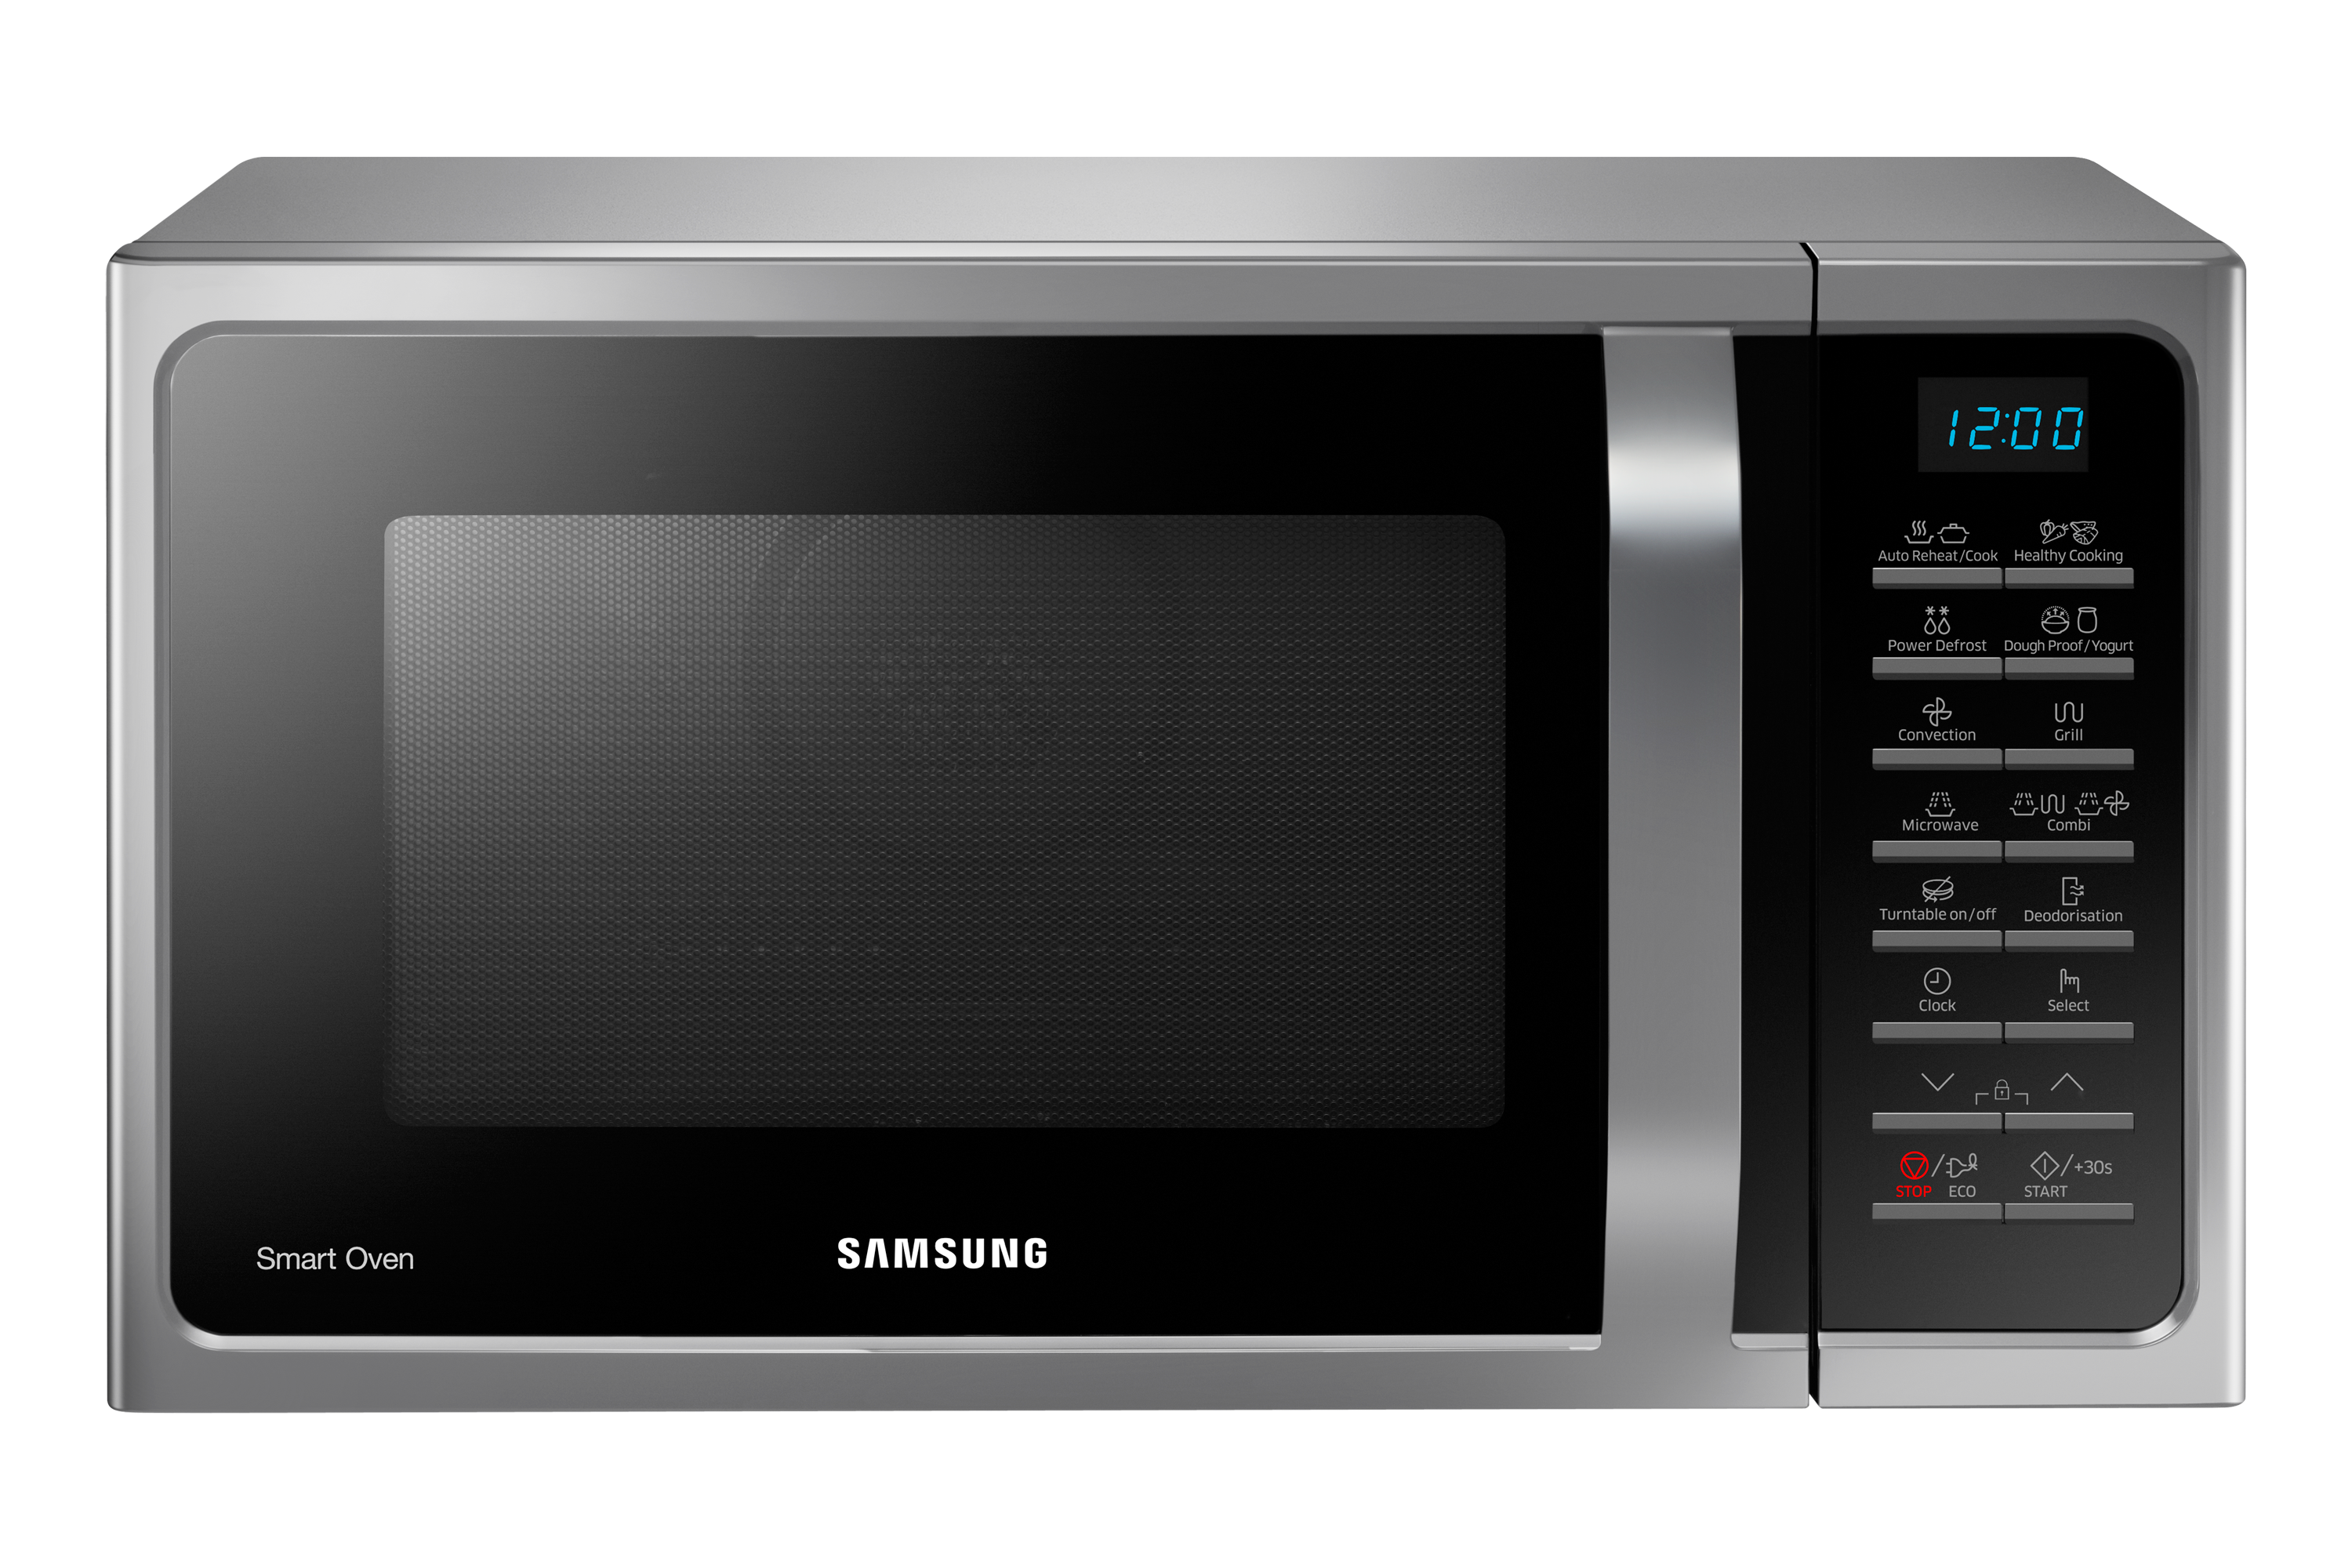 Ceramic Enamel, 28L, Grill Convection Microwave